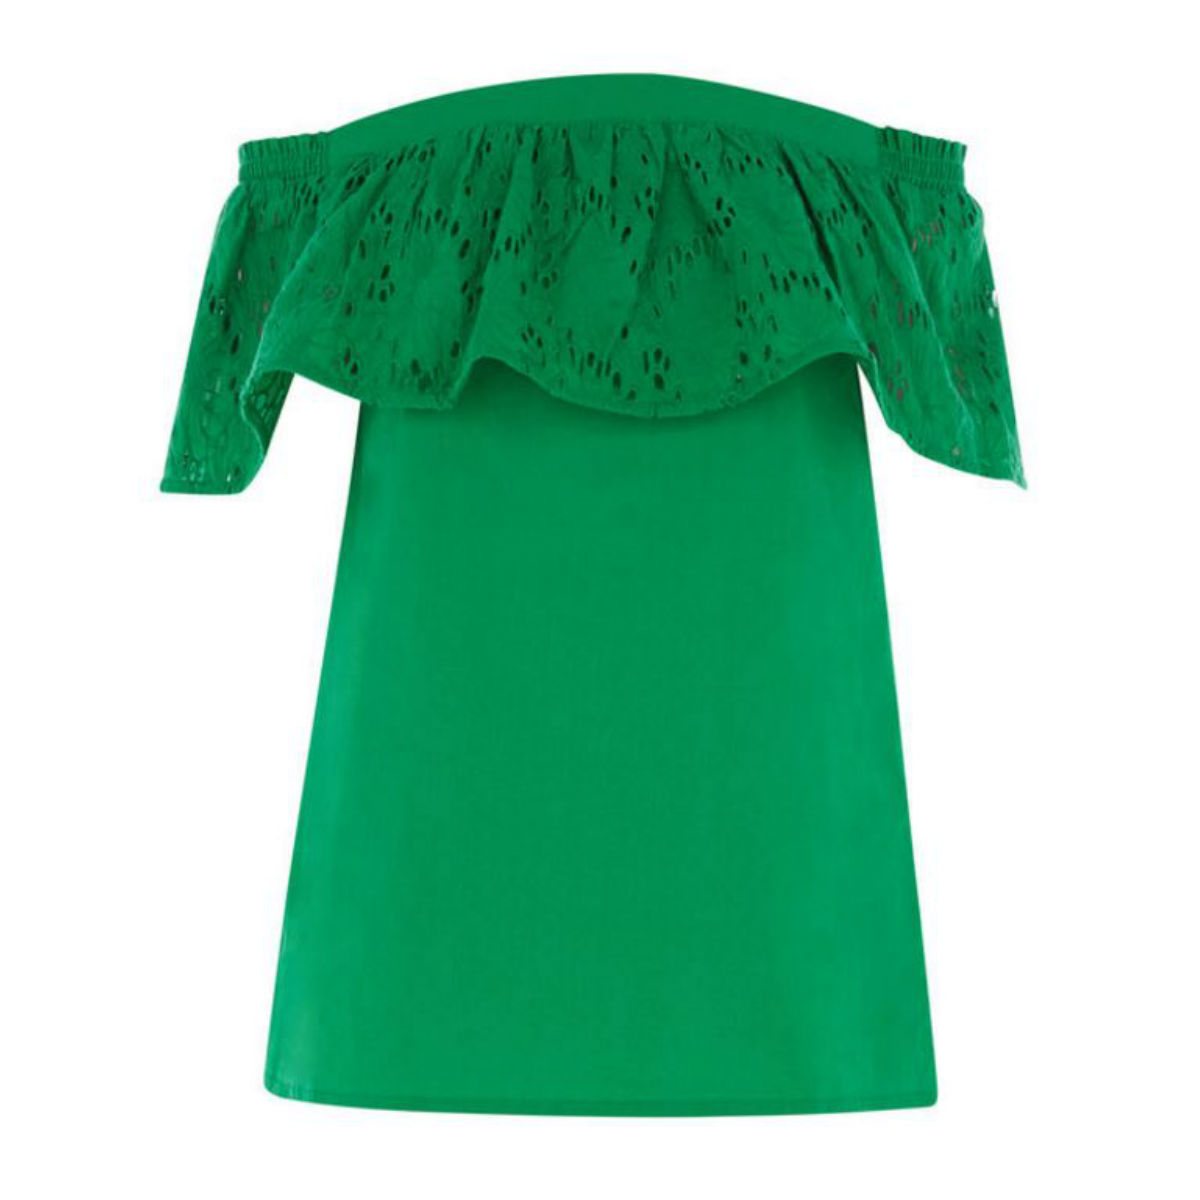 Broderie off-the-shoulder top, £29, Warehouse